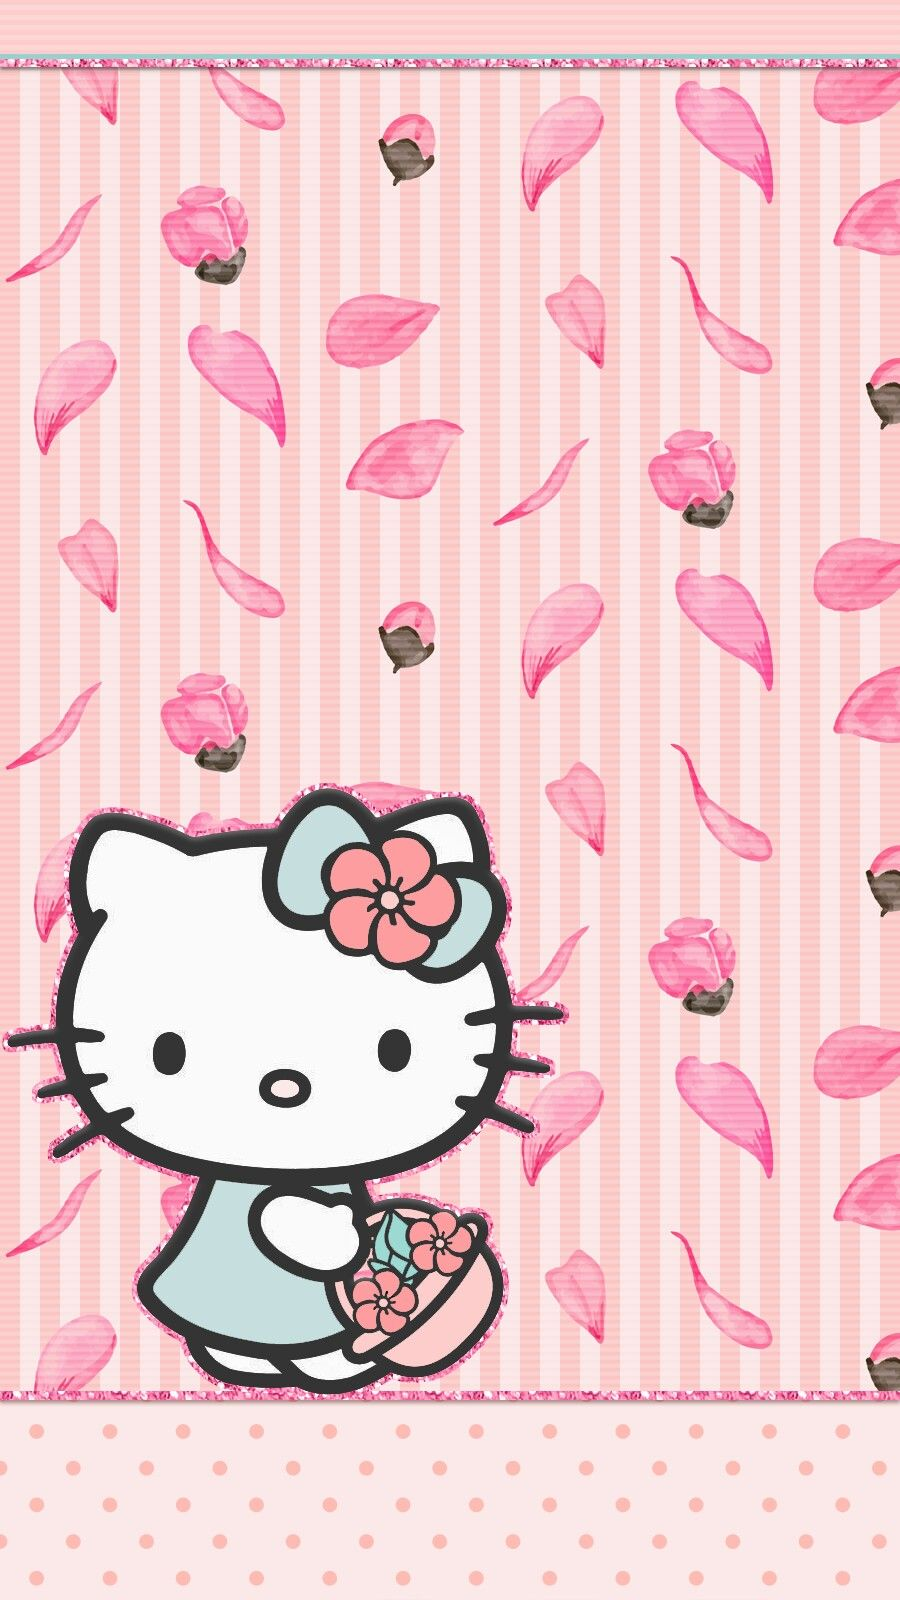 Cherry Blossom Wallpaper Iphone Android Hello Kitty Samsung J2 Pro 2018 Case Cover 304843 Hd Wallpaper Backgrounds Download